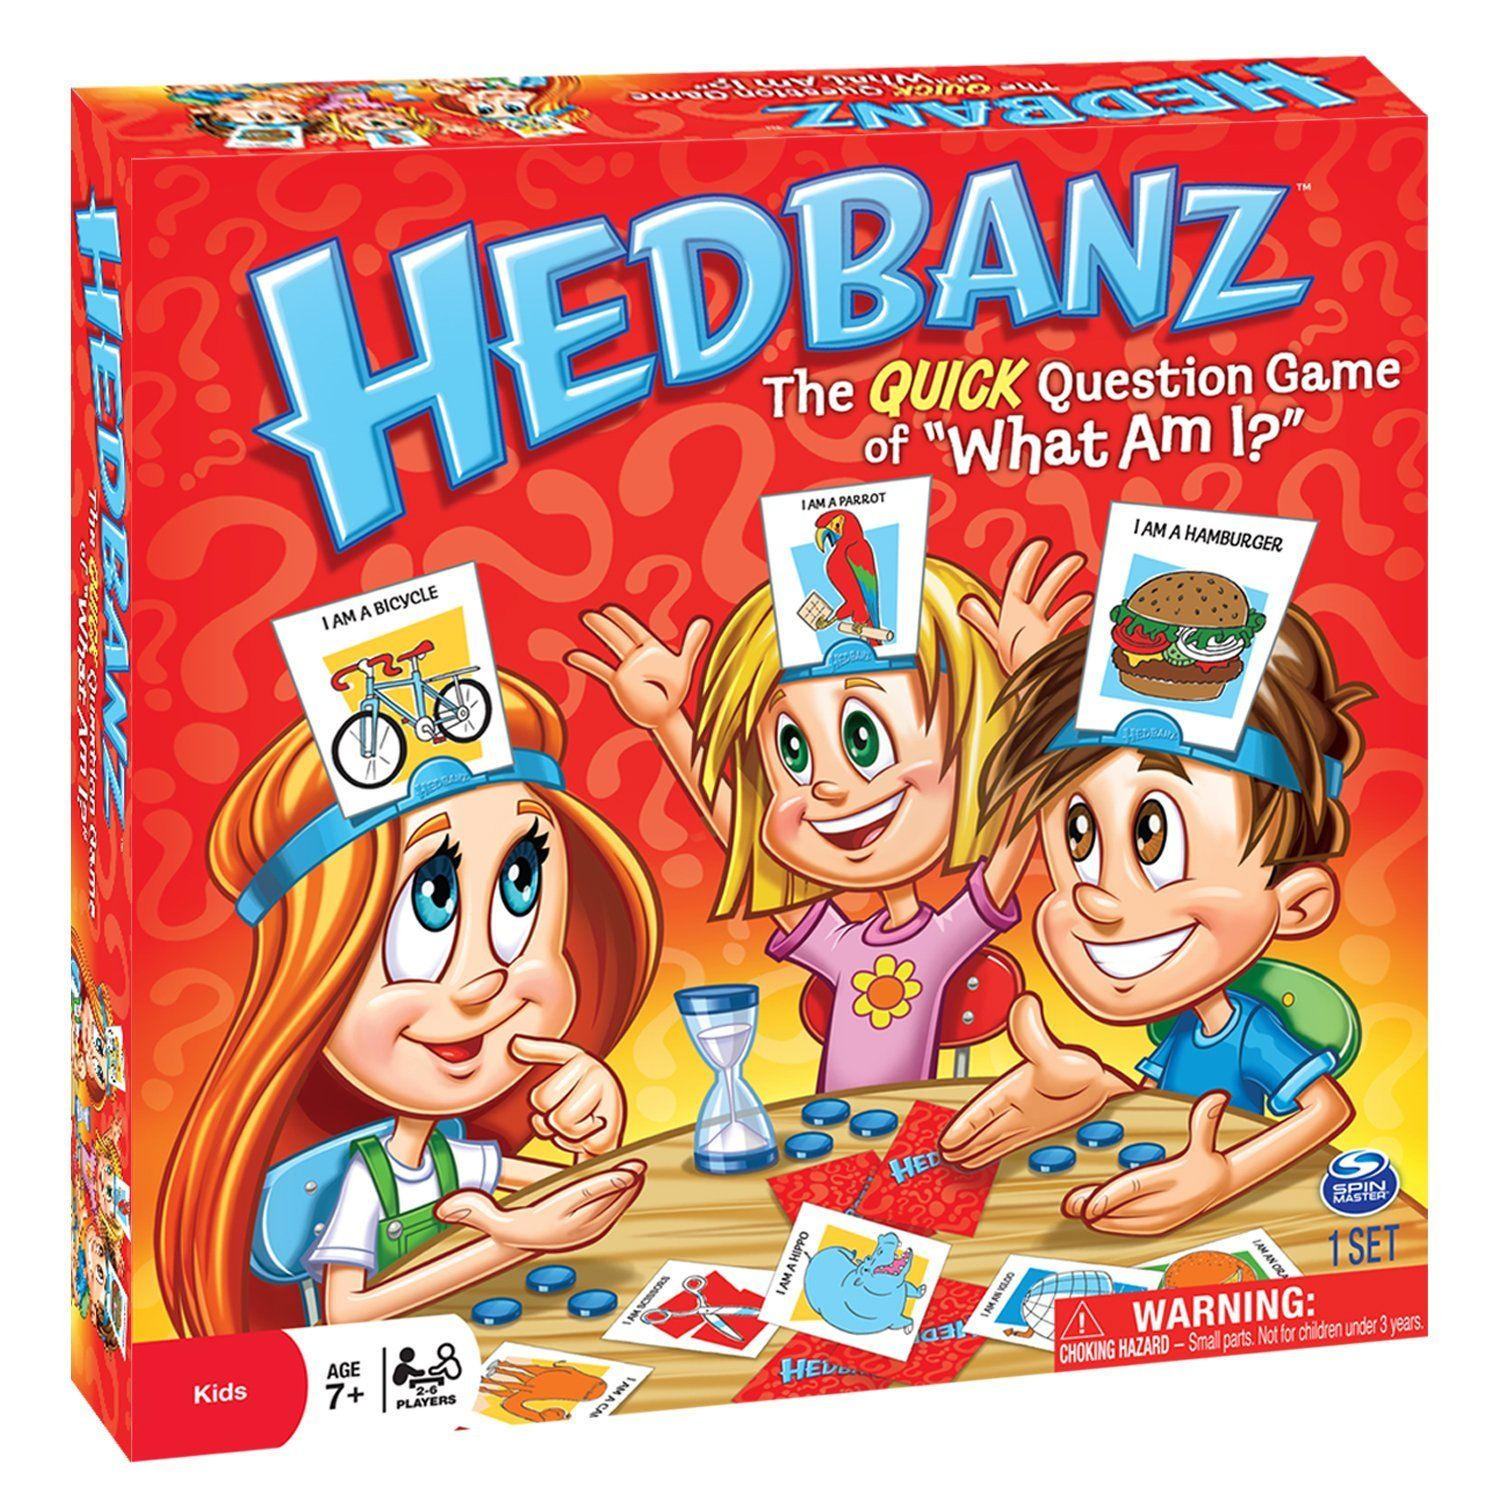 HedBanz Game fun for 7 year old girls Games